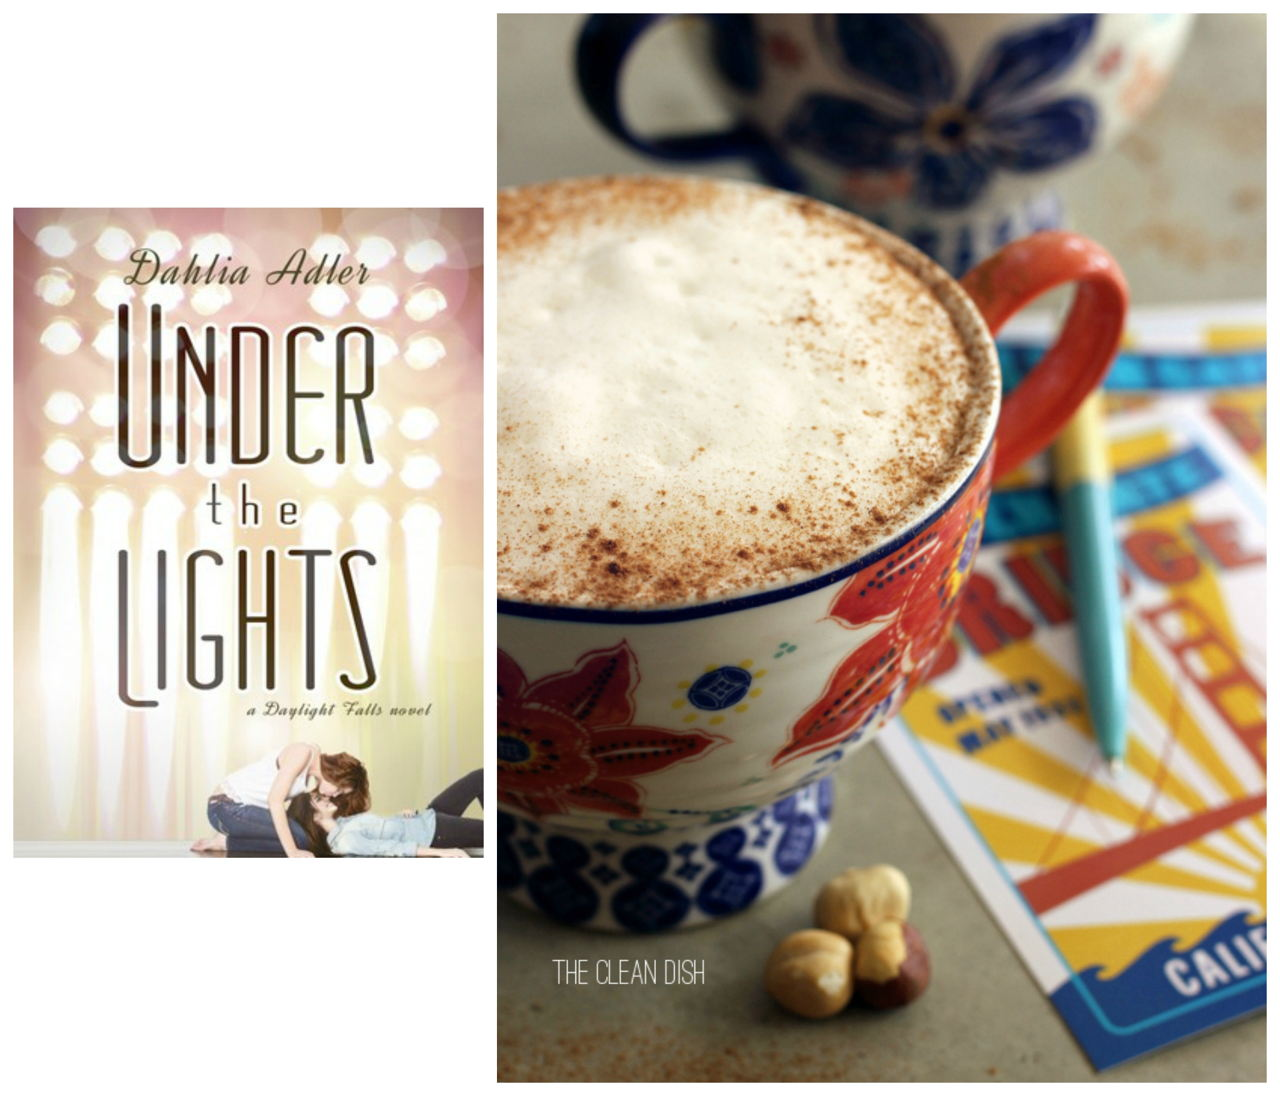 UNDER THE LIGHTS by Dahlia Alder and Latté Recipe from The Clean Dish // www.bridgidgallagher.com